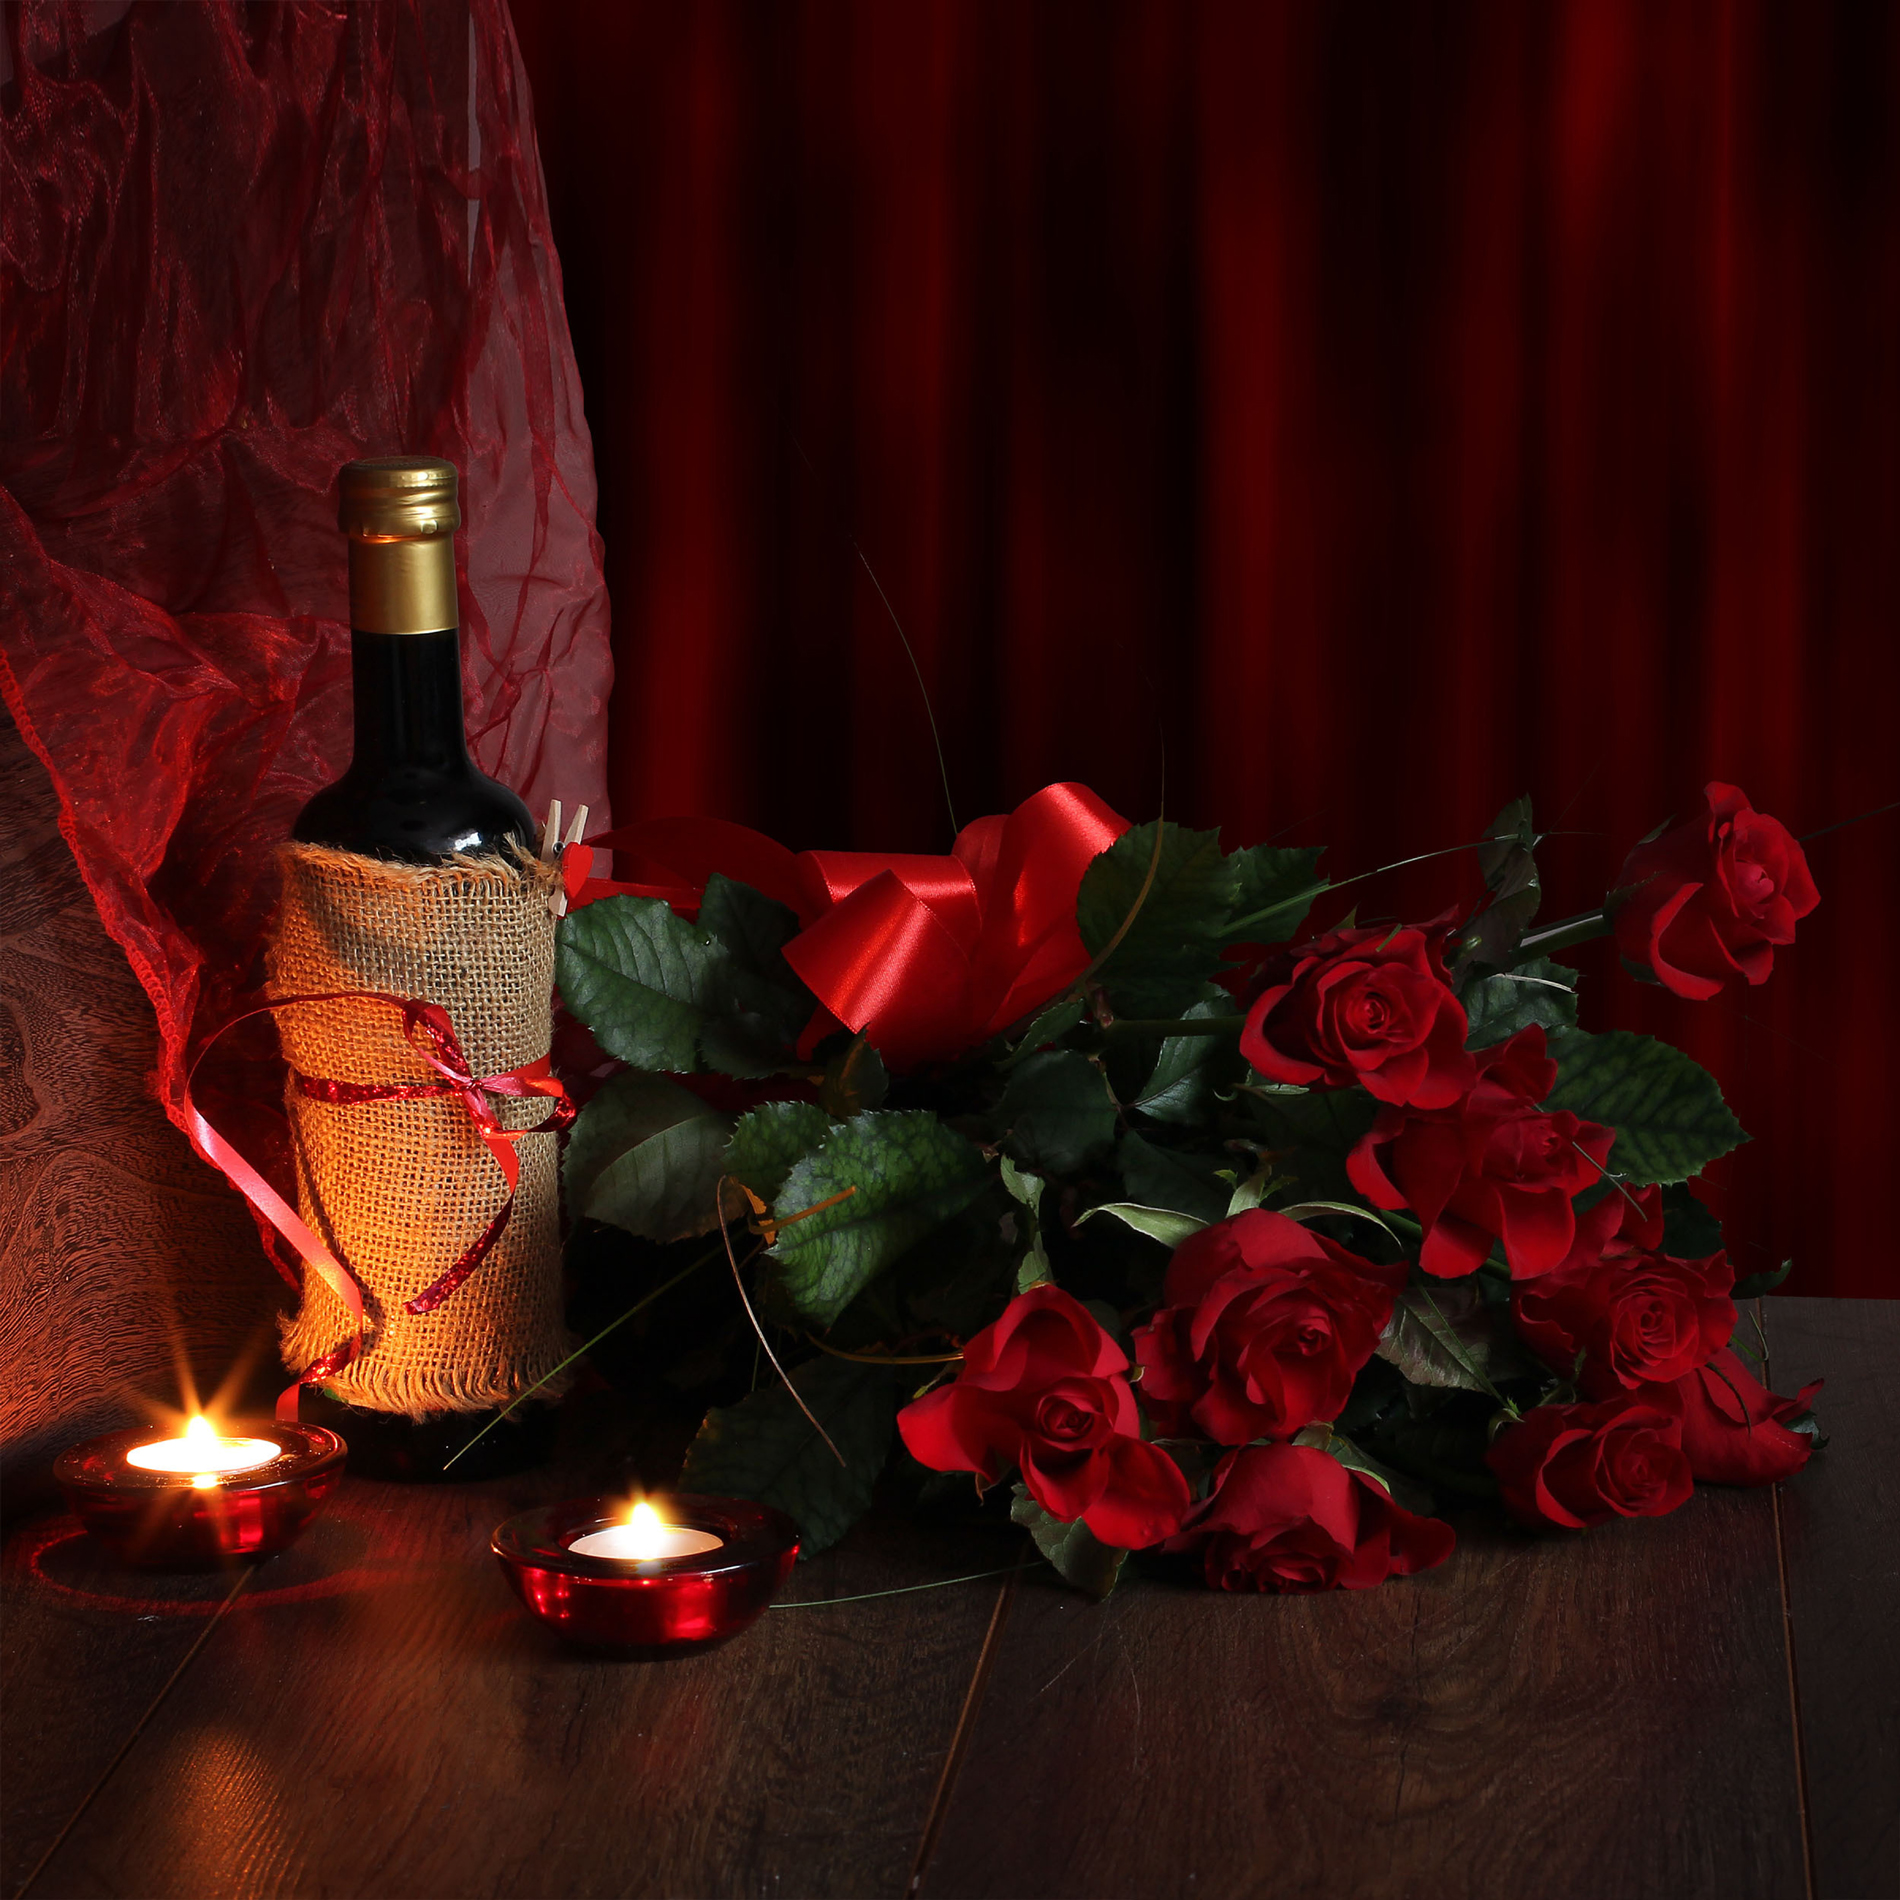 Wine bottle candle and Red blossoms and green leaves 52642